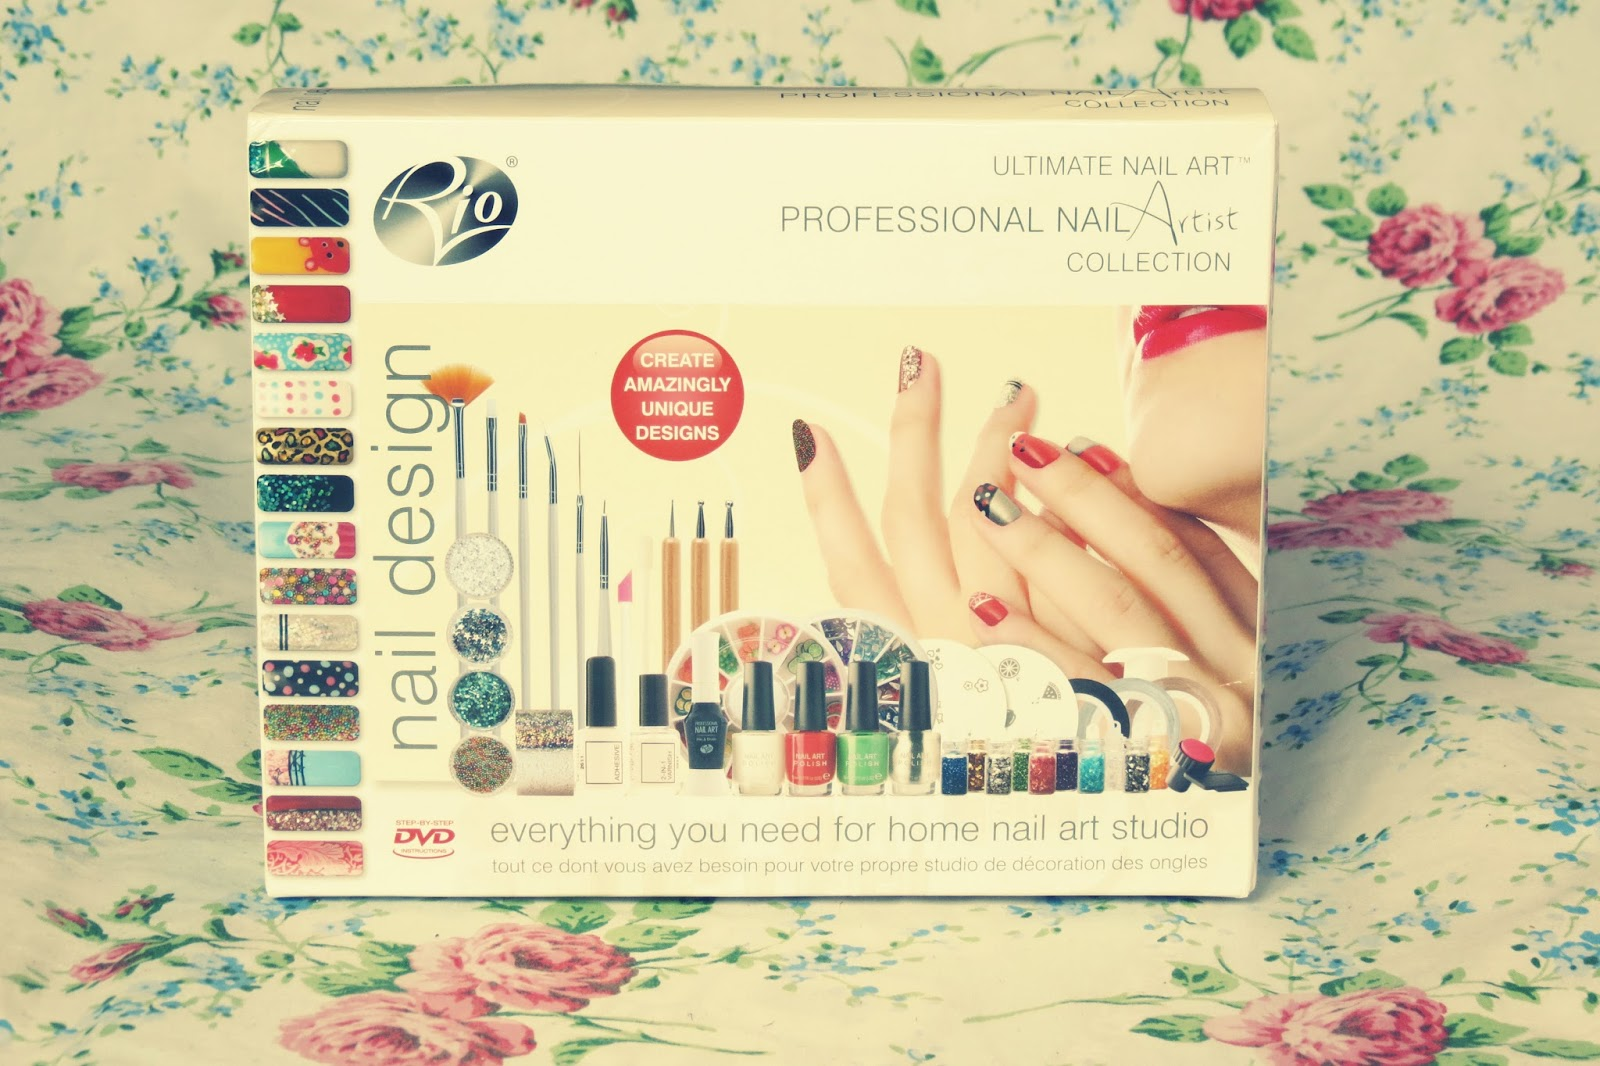 Nail art kits for beginners uk – Great photo blog about manicure 2017